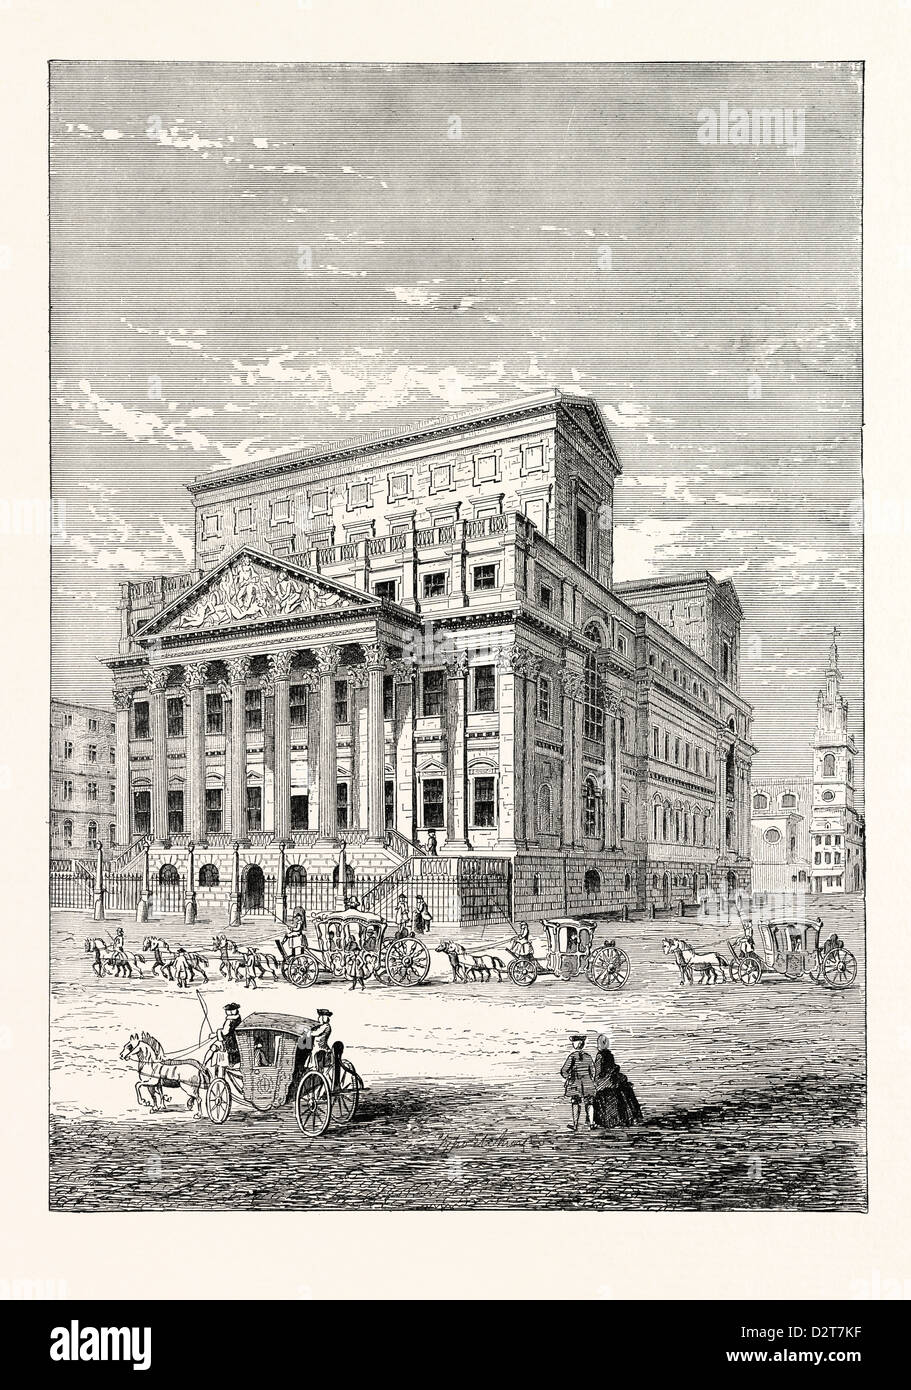 THE MANSION HOUSE IN 1750 LONDON - Stock Image